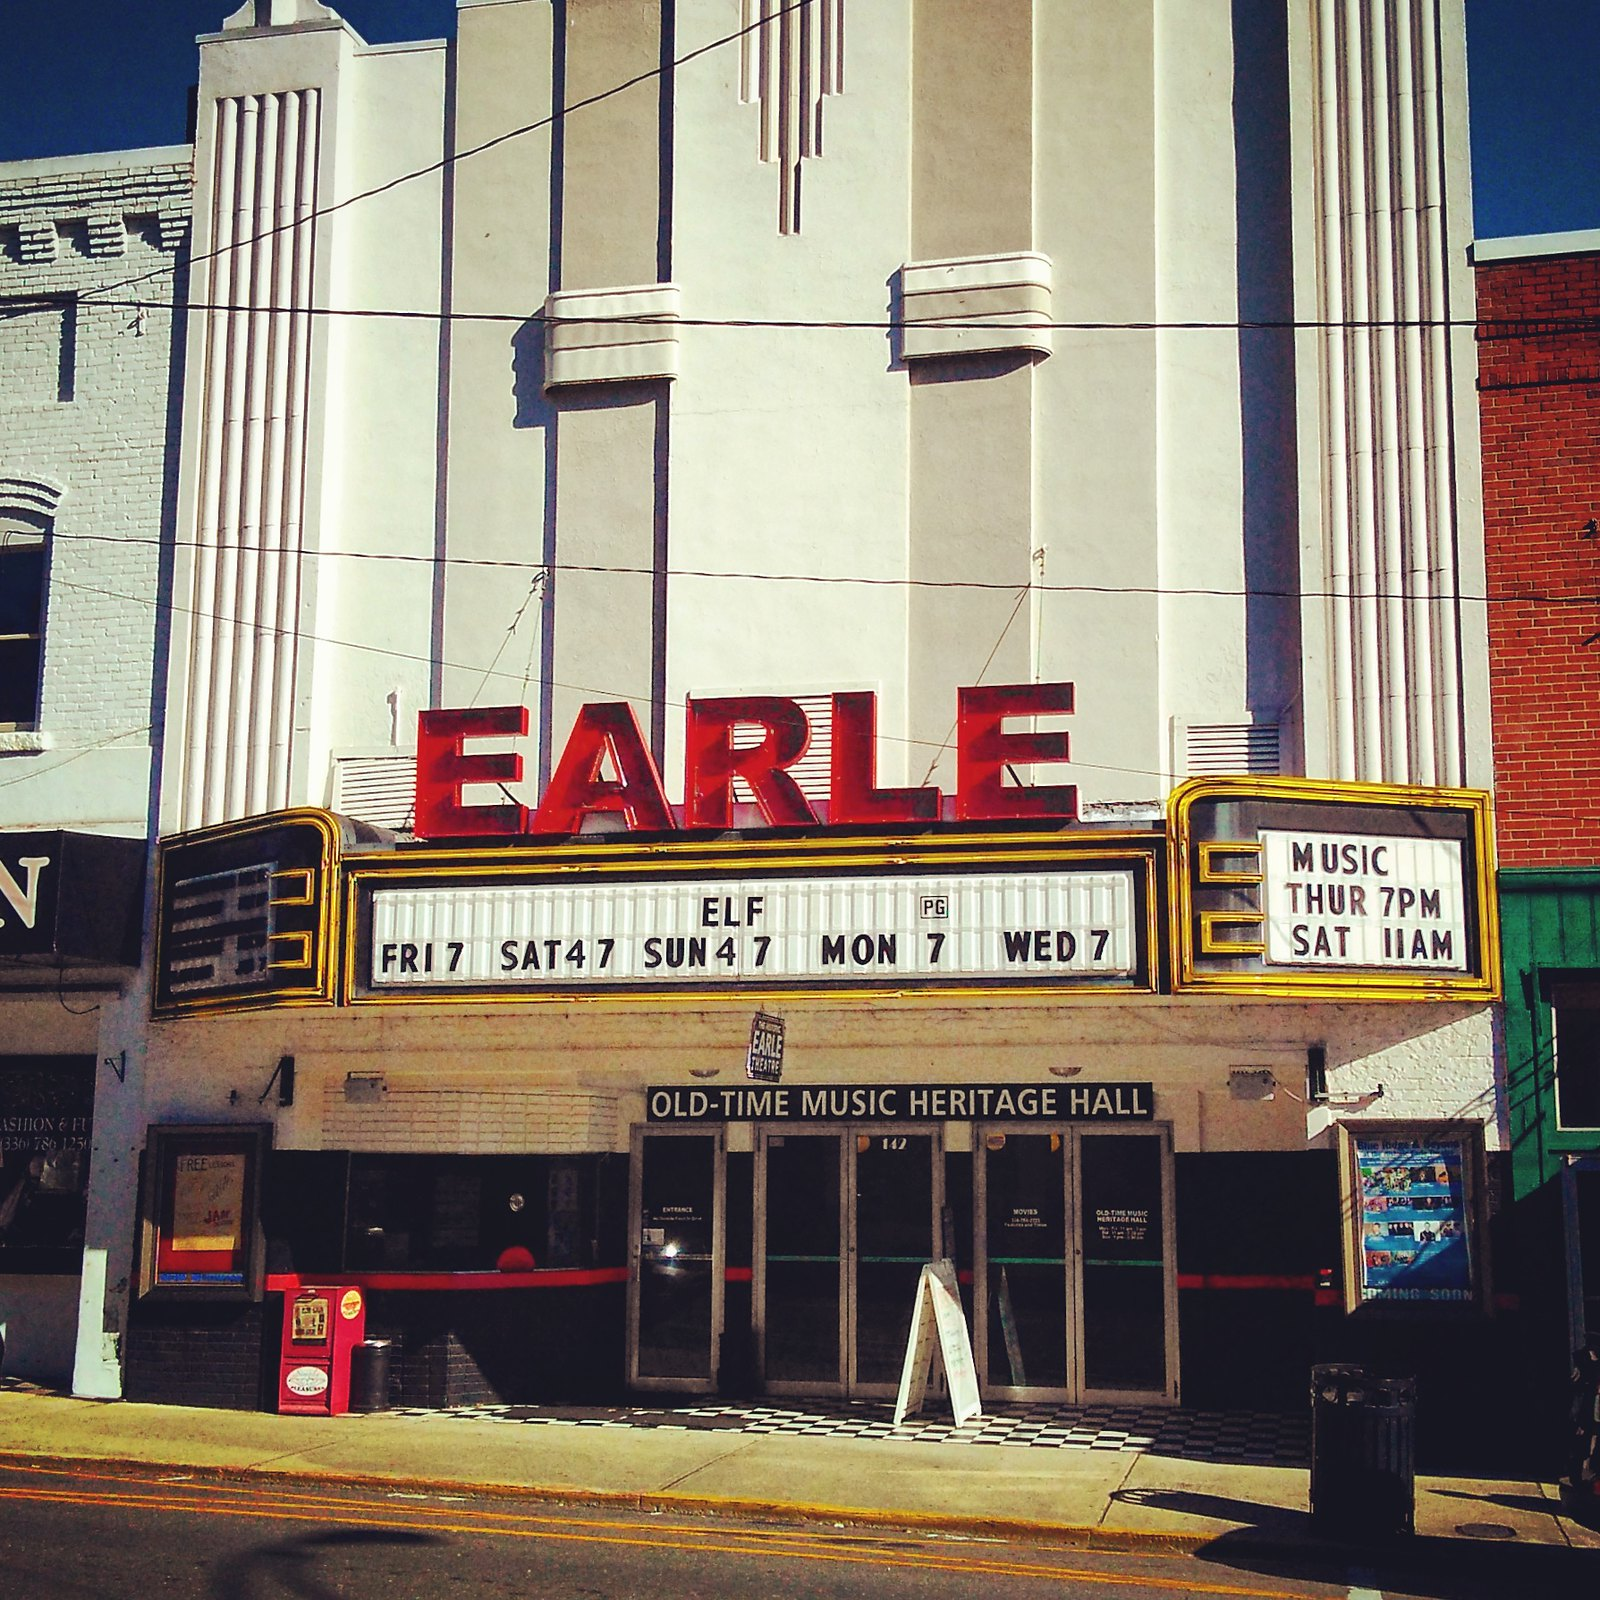 The Earle Theater-- Mount Airy, North Carolina